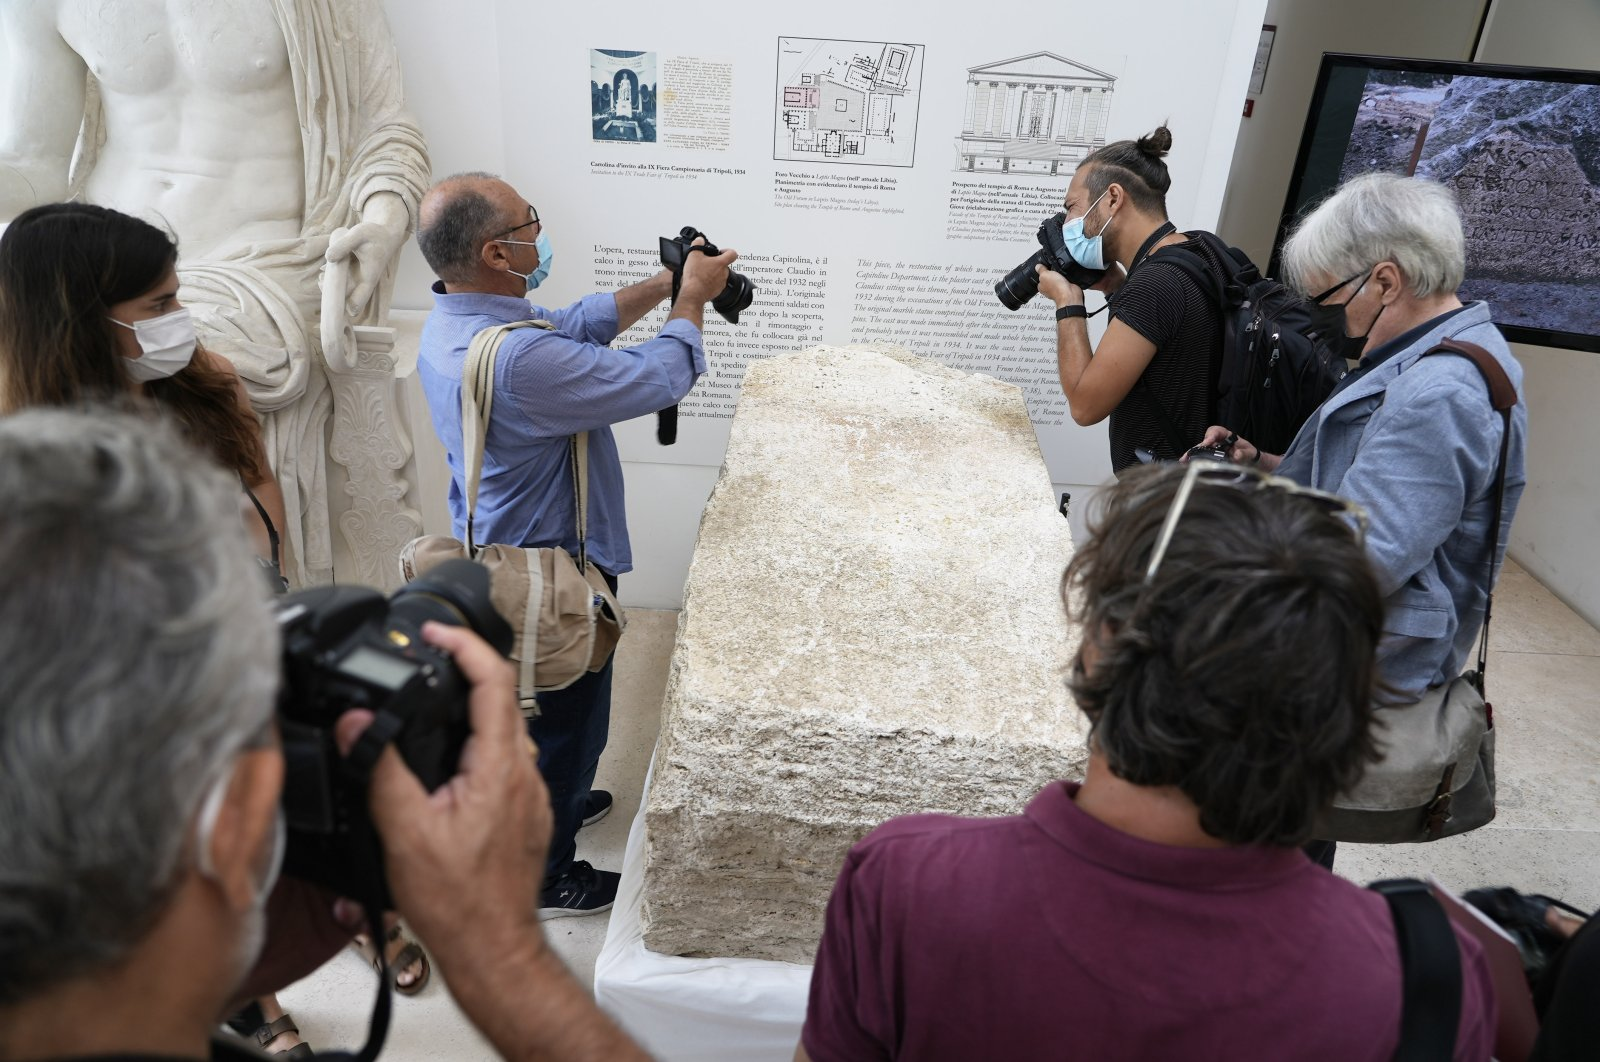 Photographers take pictures during the presentation to the press of an archeological finding that emerged during the excavations at a Mausoleum in Rome, Friday, July 16, 2021. (AP Photo/Domenico Stinellis)